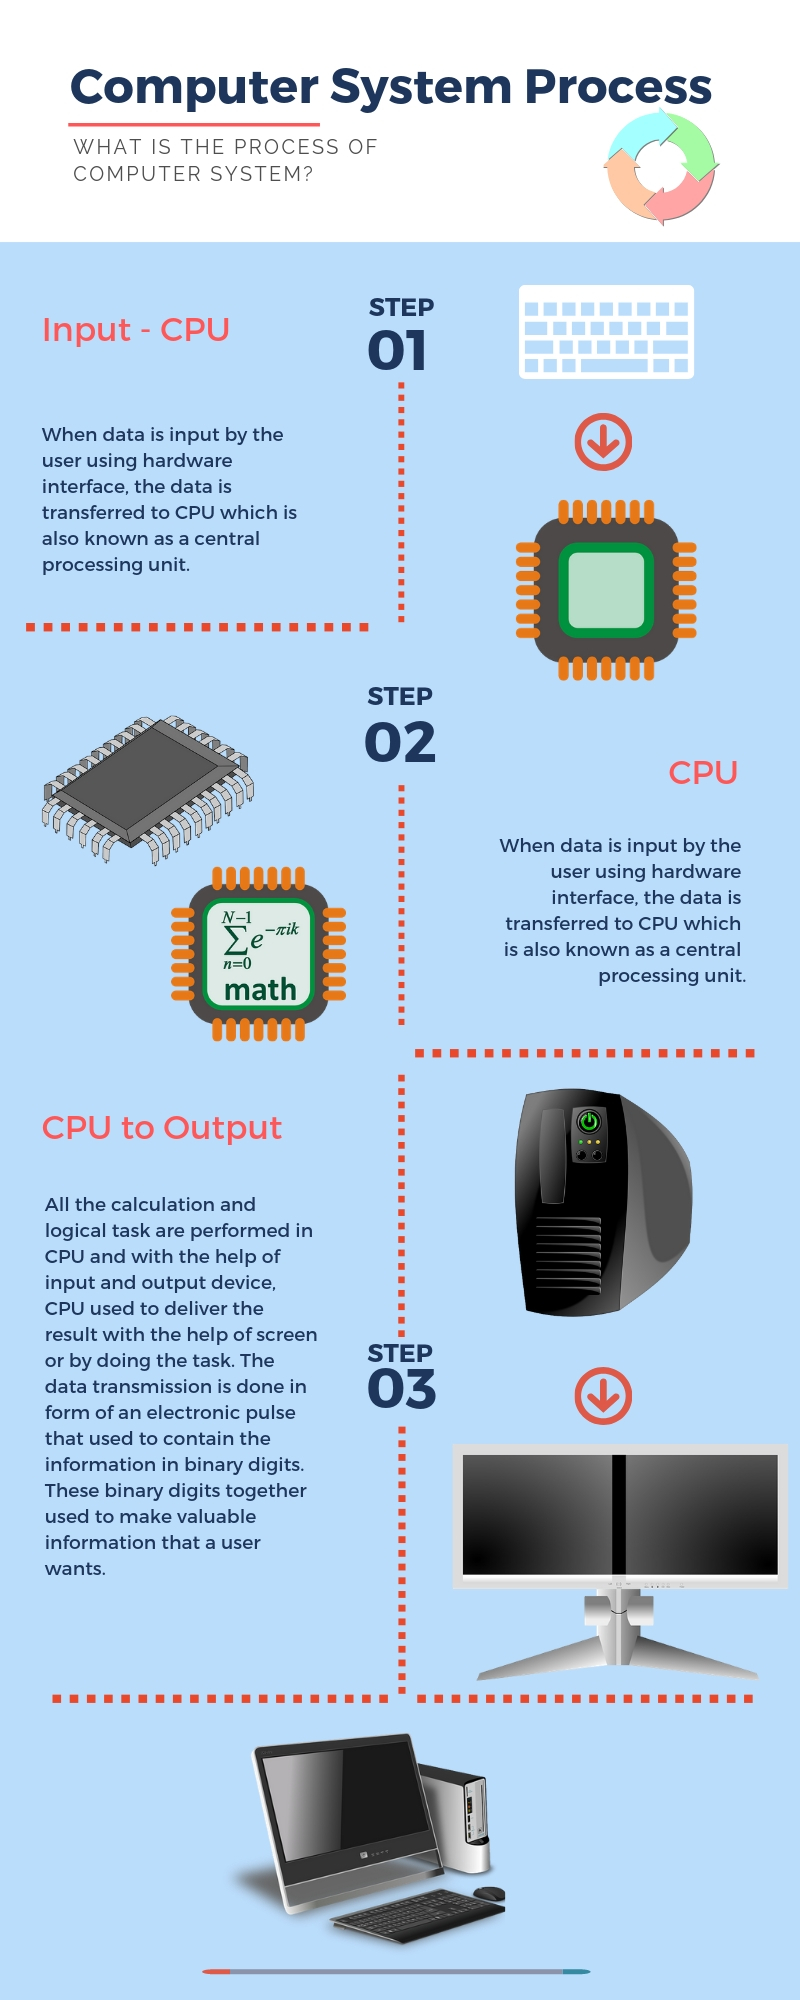 WHAT IS THE PROCESS OF COMPUTER SYSTEM?